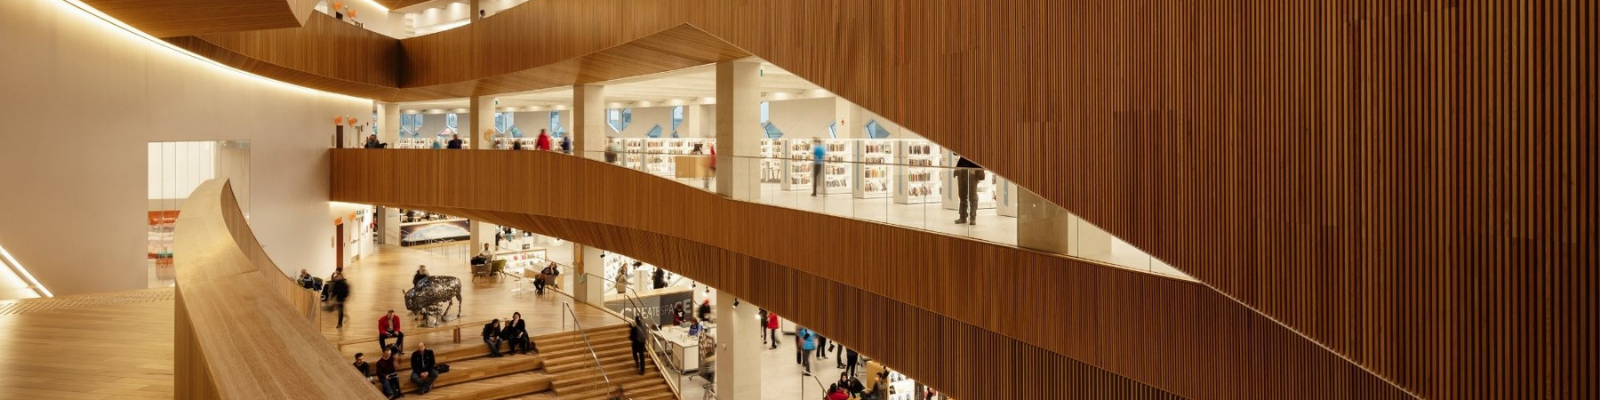 Interior of New Central Library